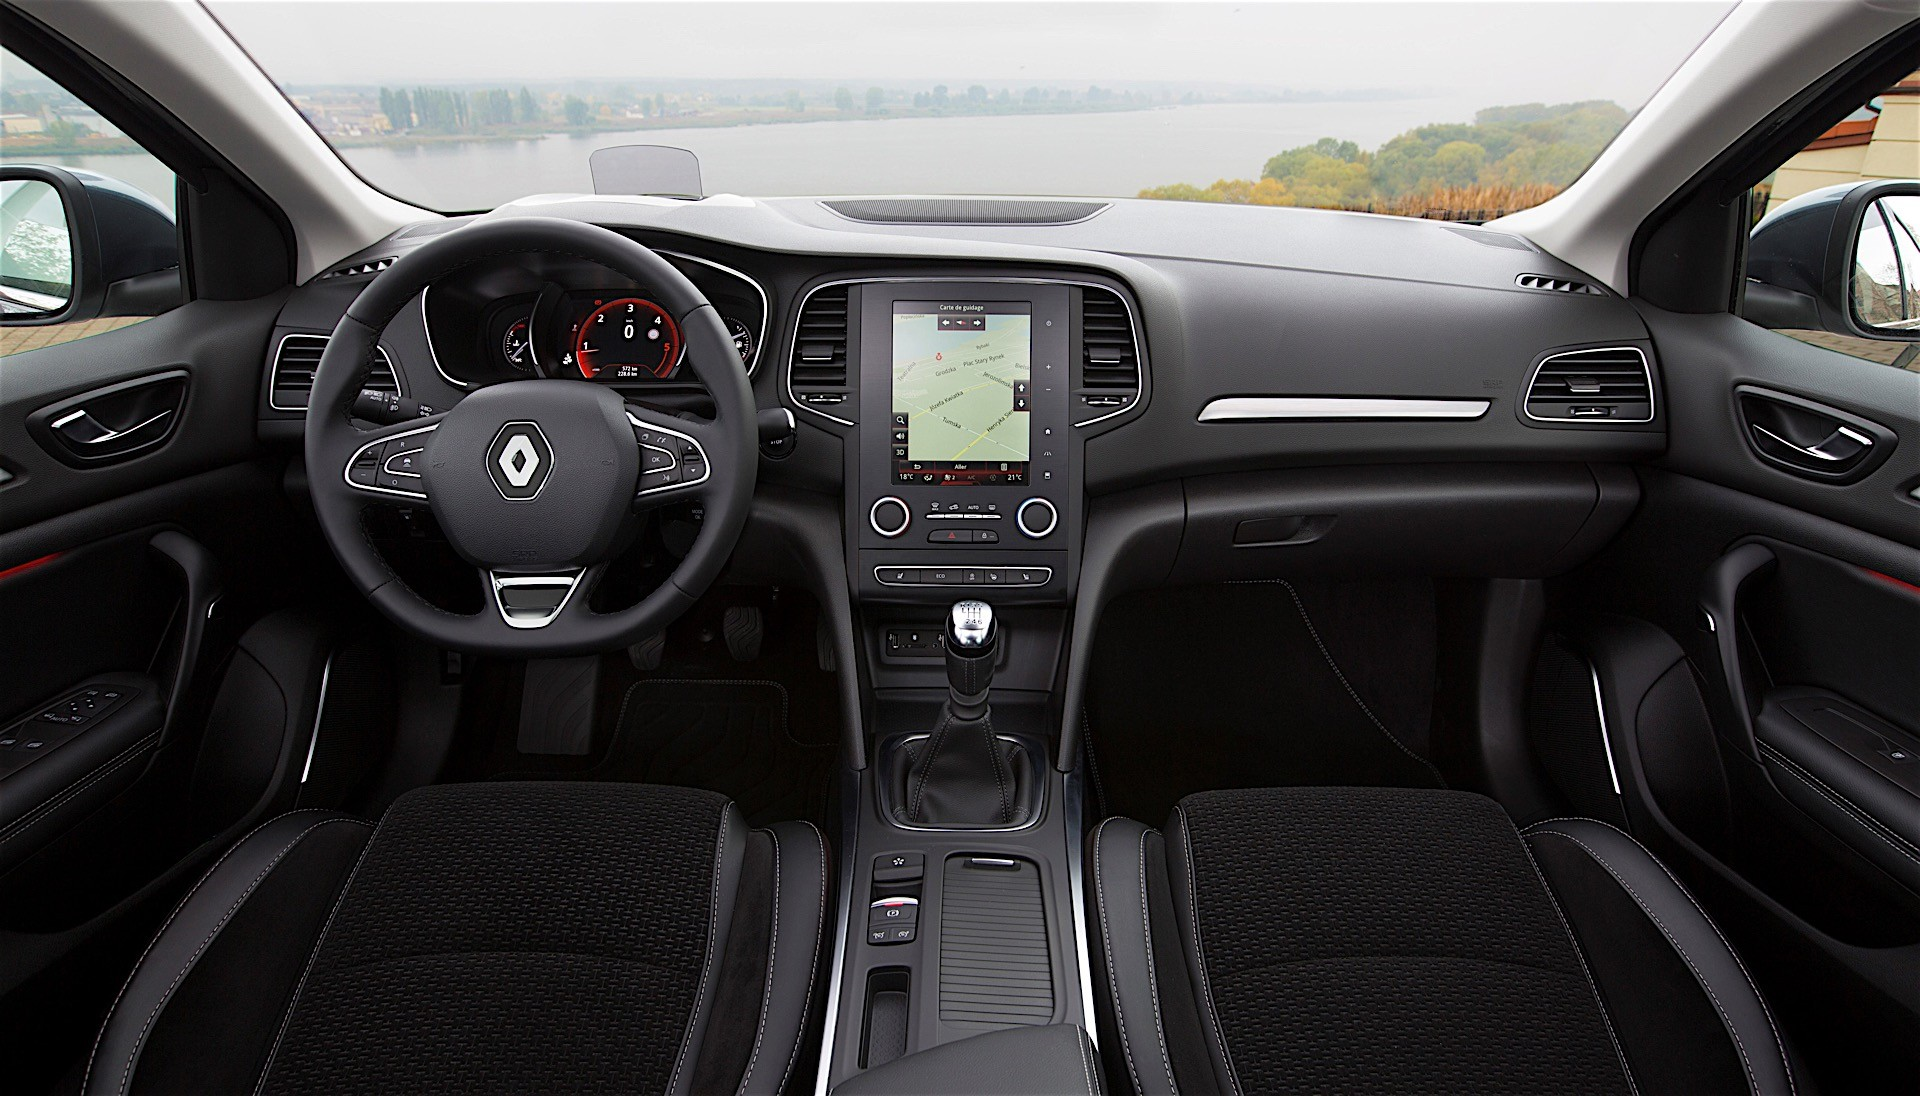 2017 renault megane sedan has full specs sheet revealed autoevolution. Black Bedroom Furniture Sets. Home Design Ideas